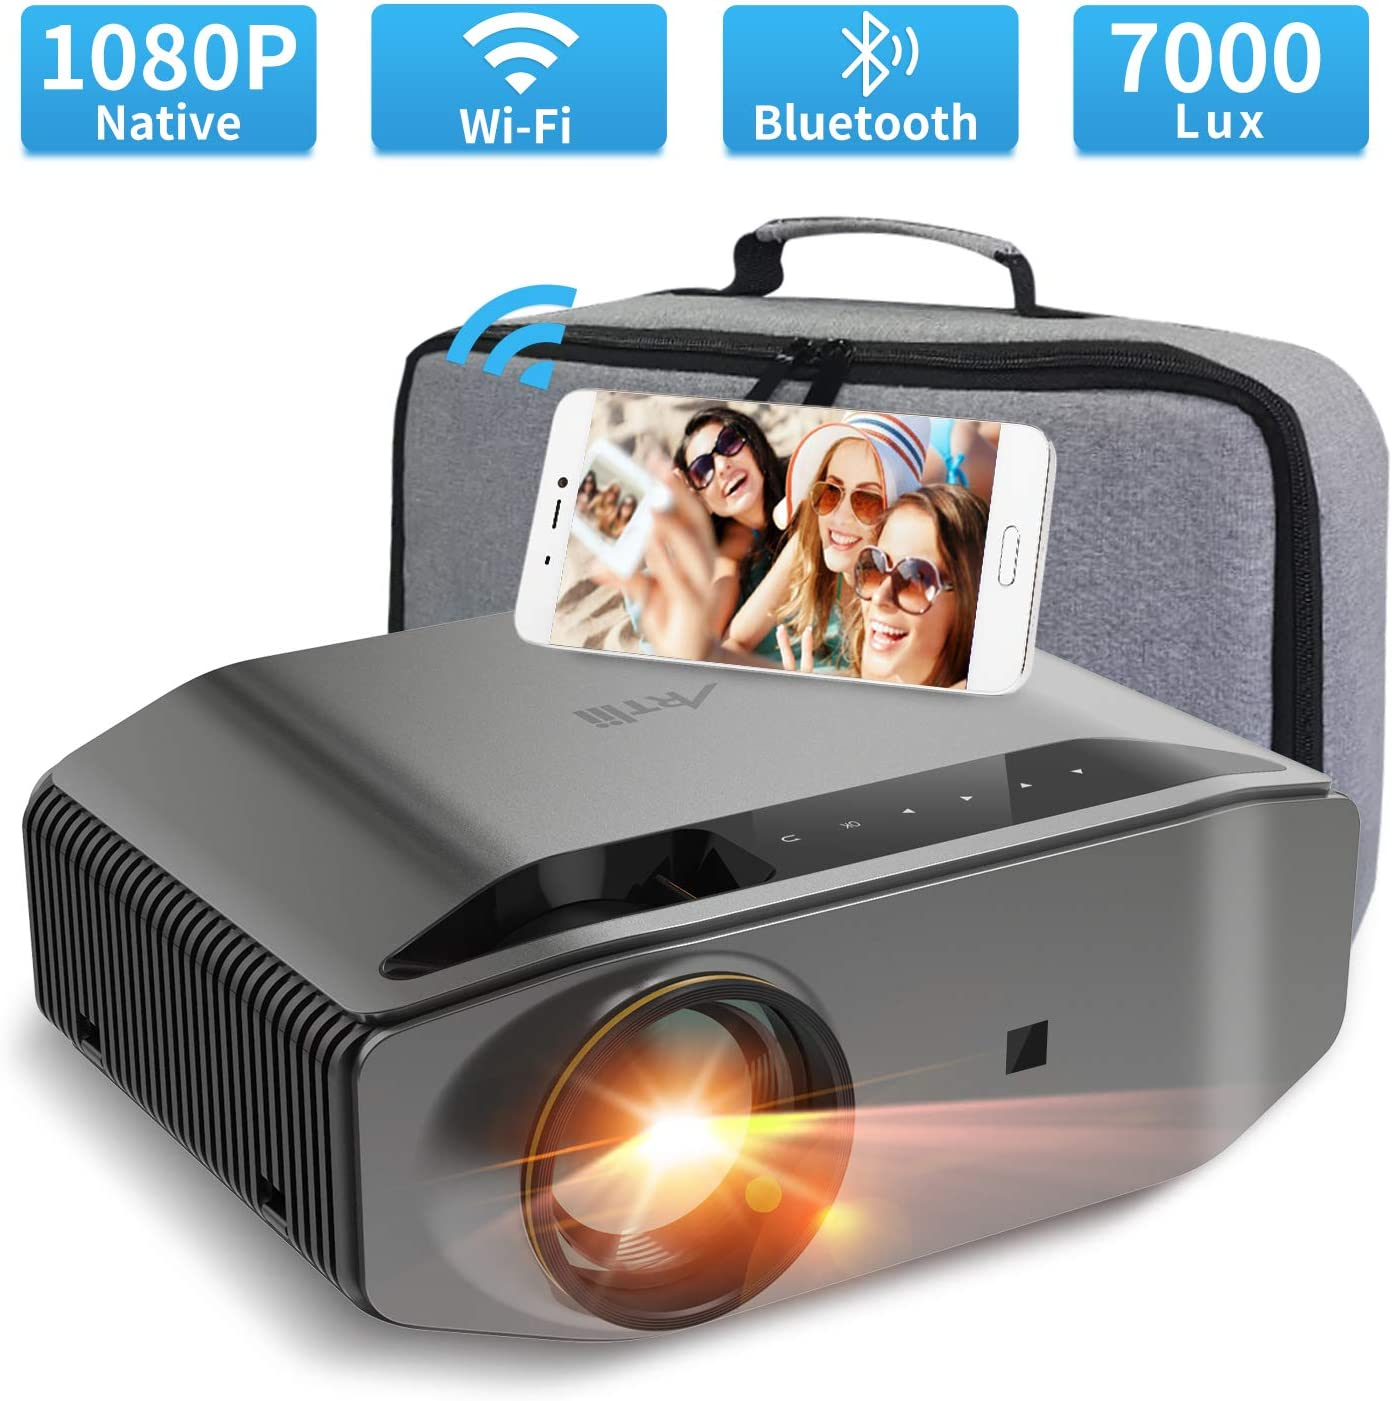 "1080P Projector - Artlii Energon 2 Full HD WiFi Bluetooth Projector Support 4K, 7000L 300"" Display, Compatible with TV Stick, HDMI, iPhone, Android for Home Theater, PPT Presentation"